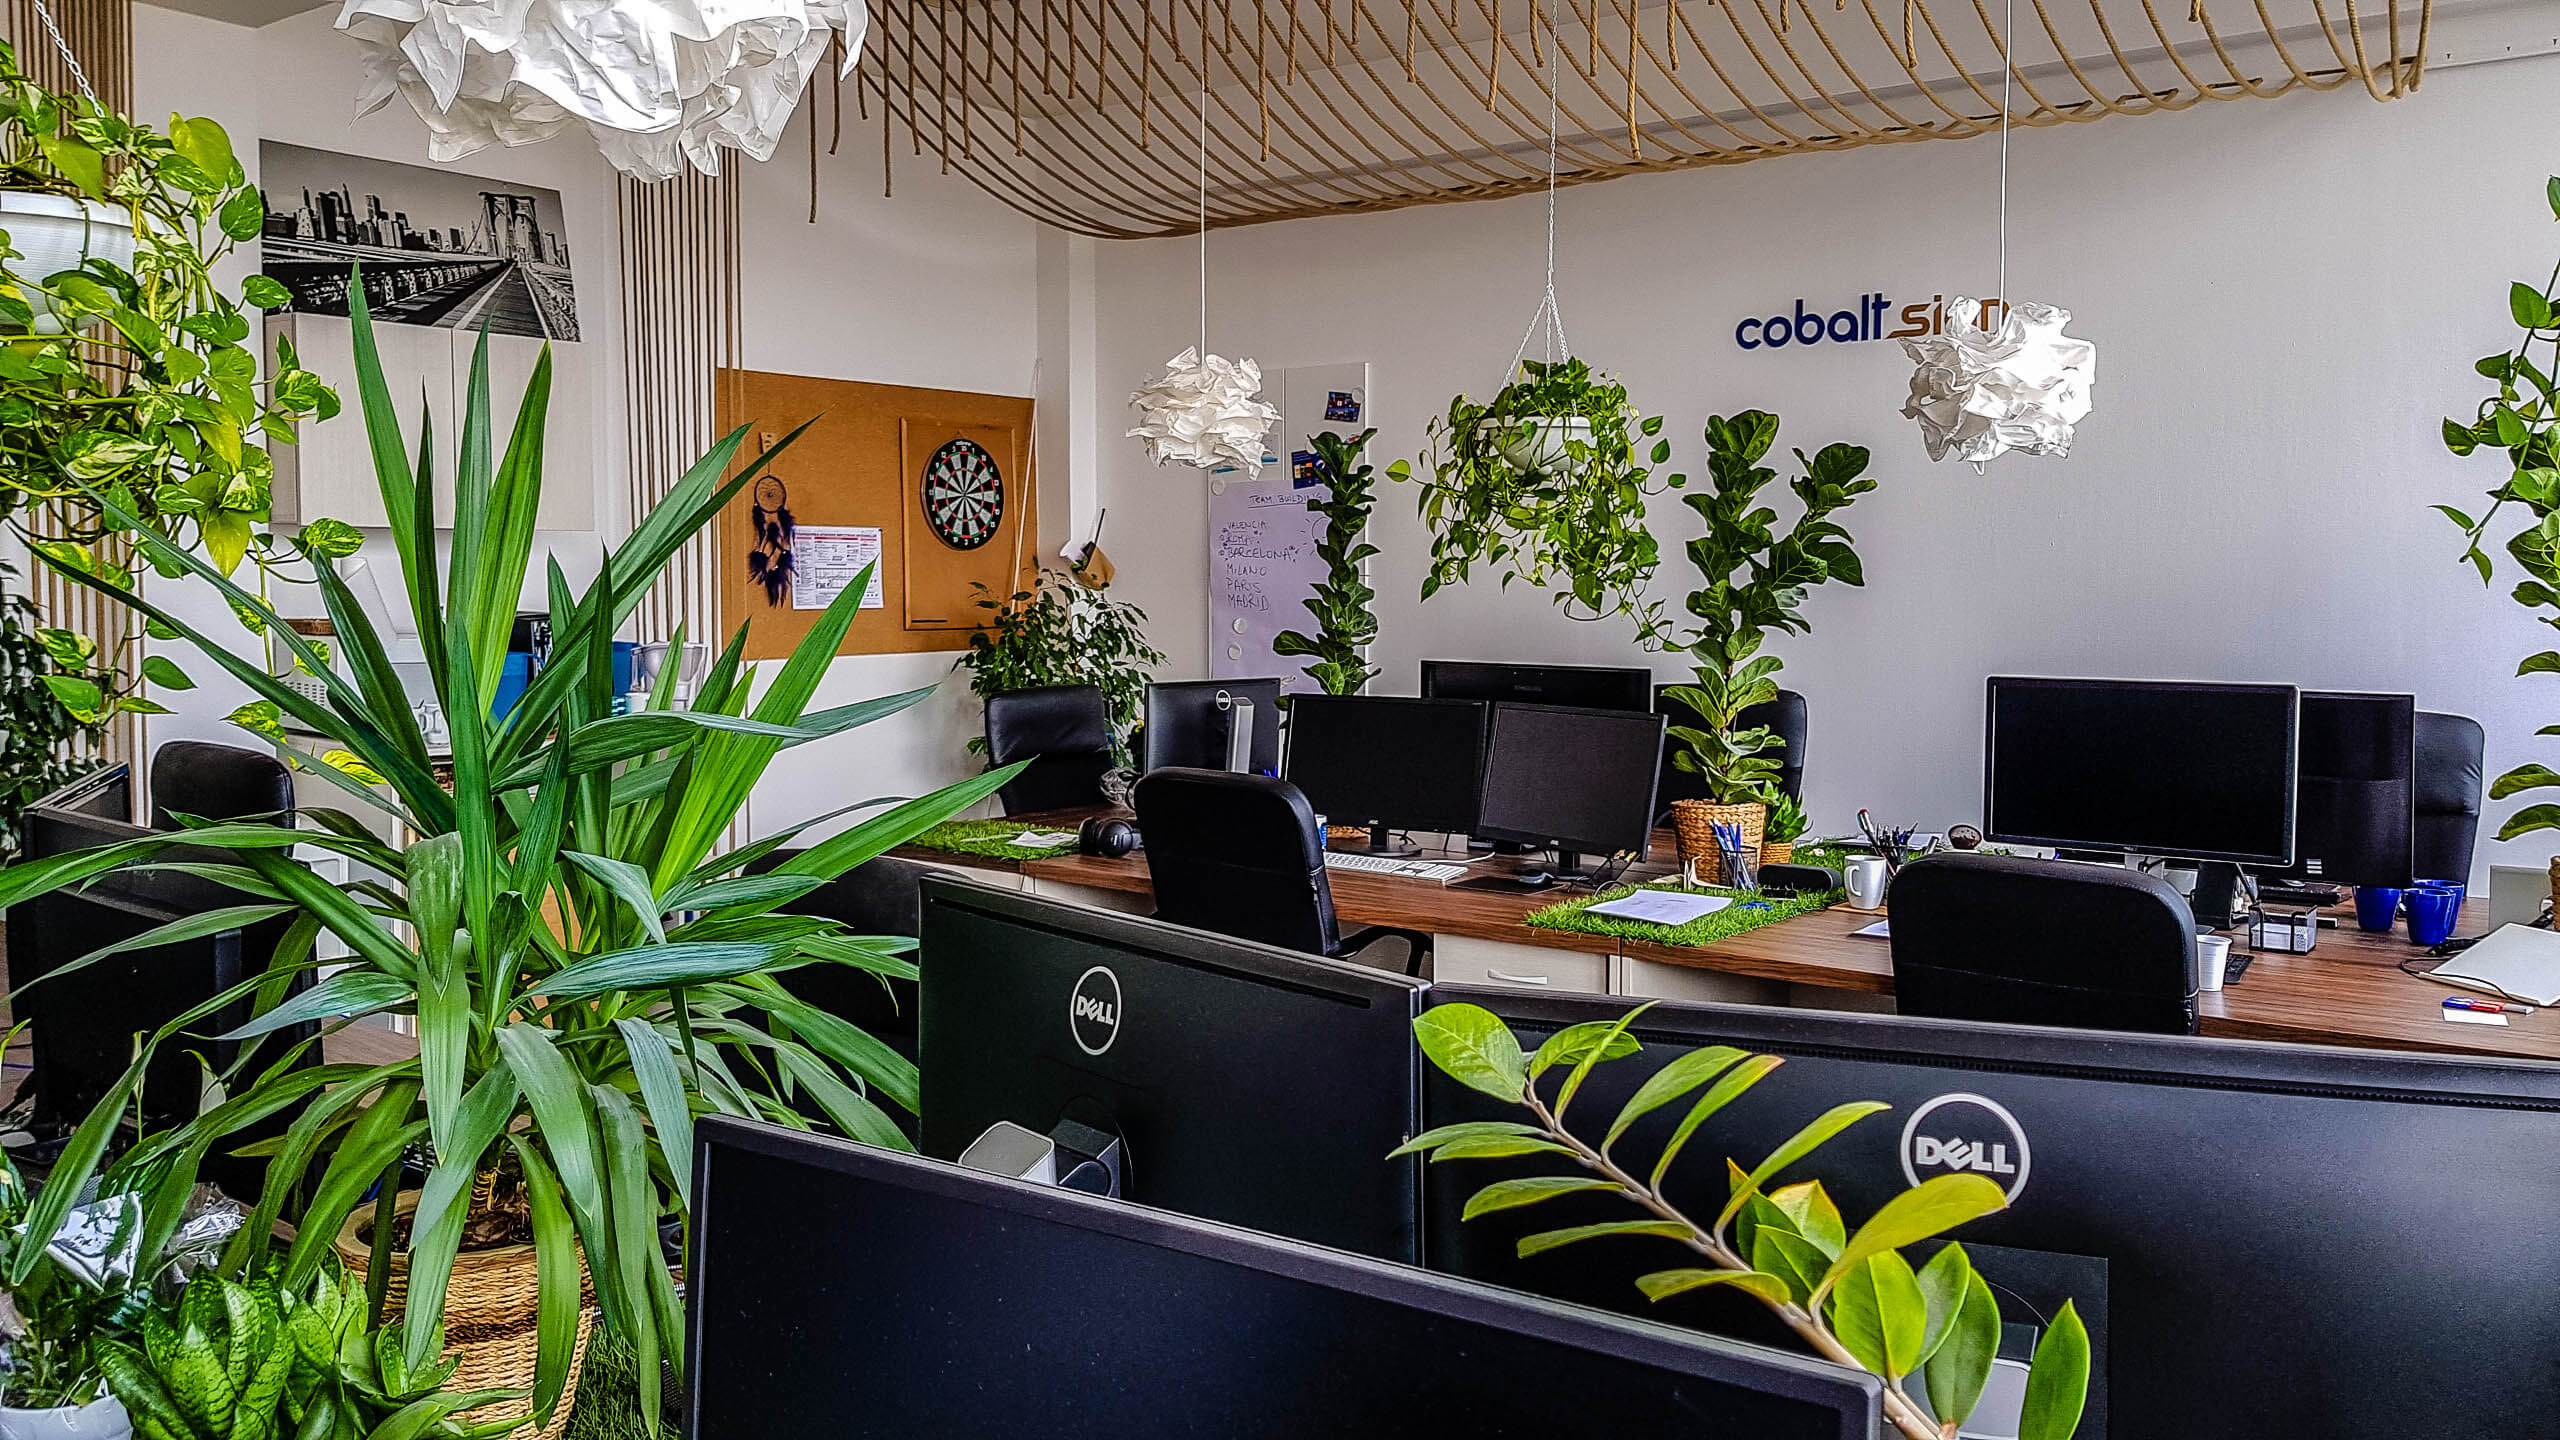 Cobalt Sign - old office (12 of 17)